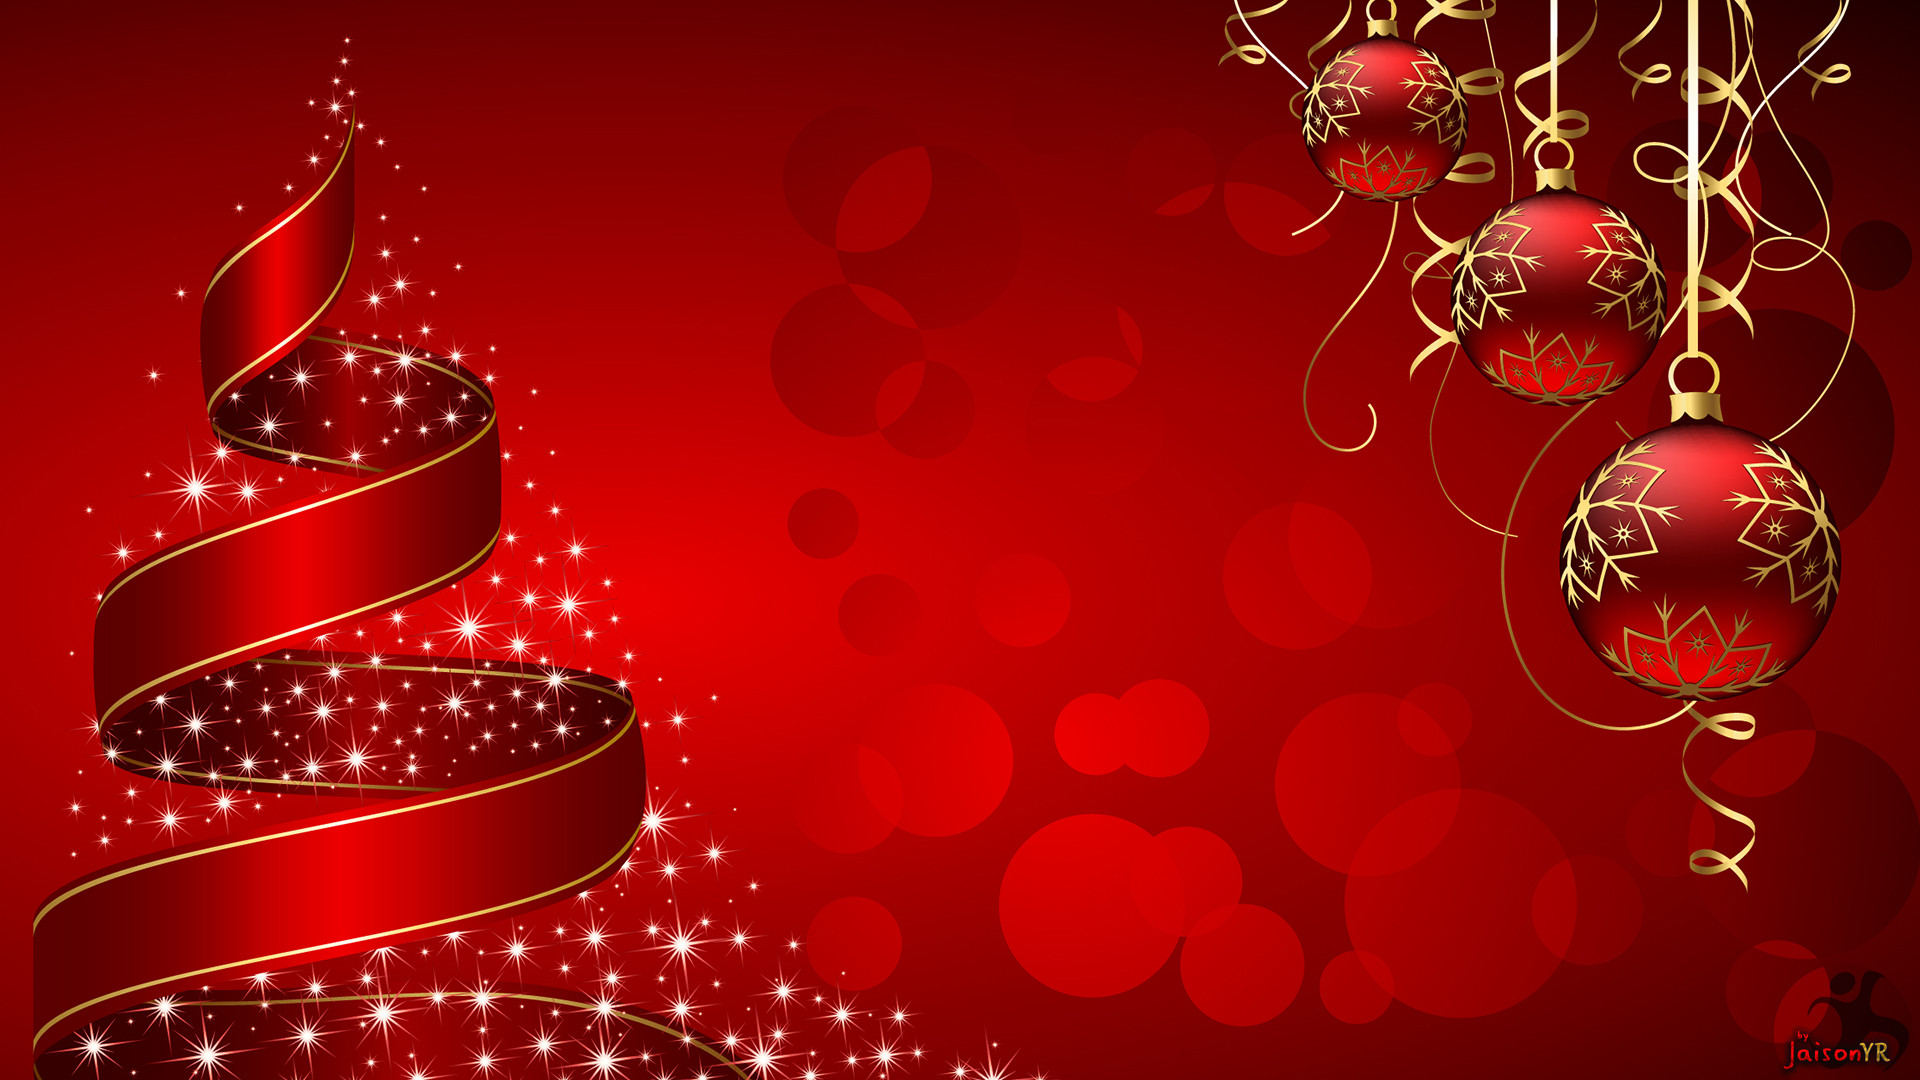 Christmas Backgrounds Hd.Large Christmas Backgrounds 58 Images